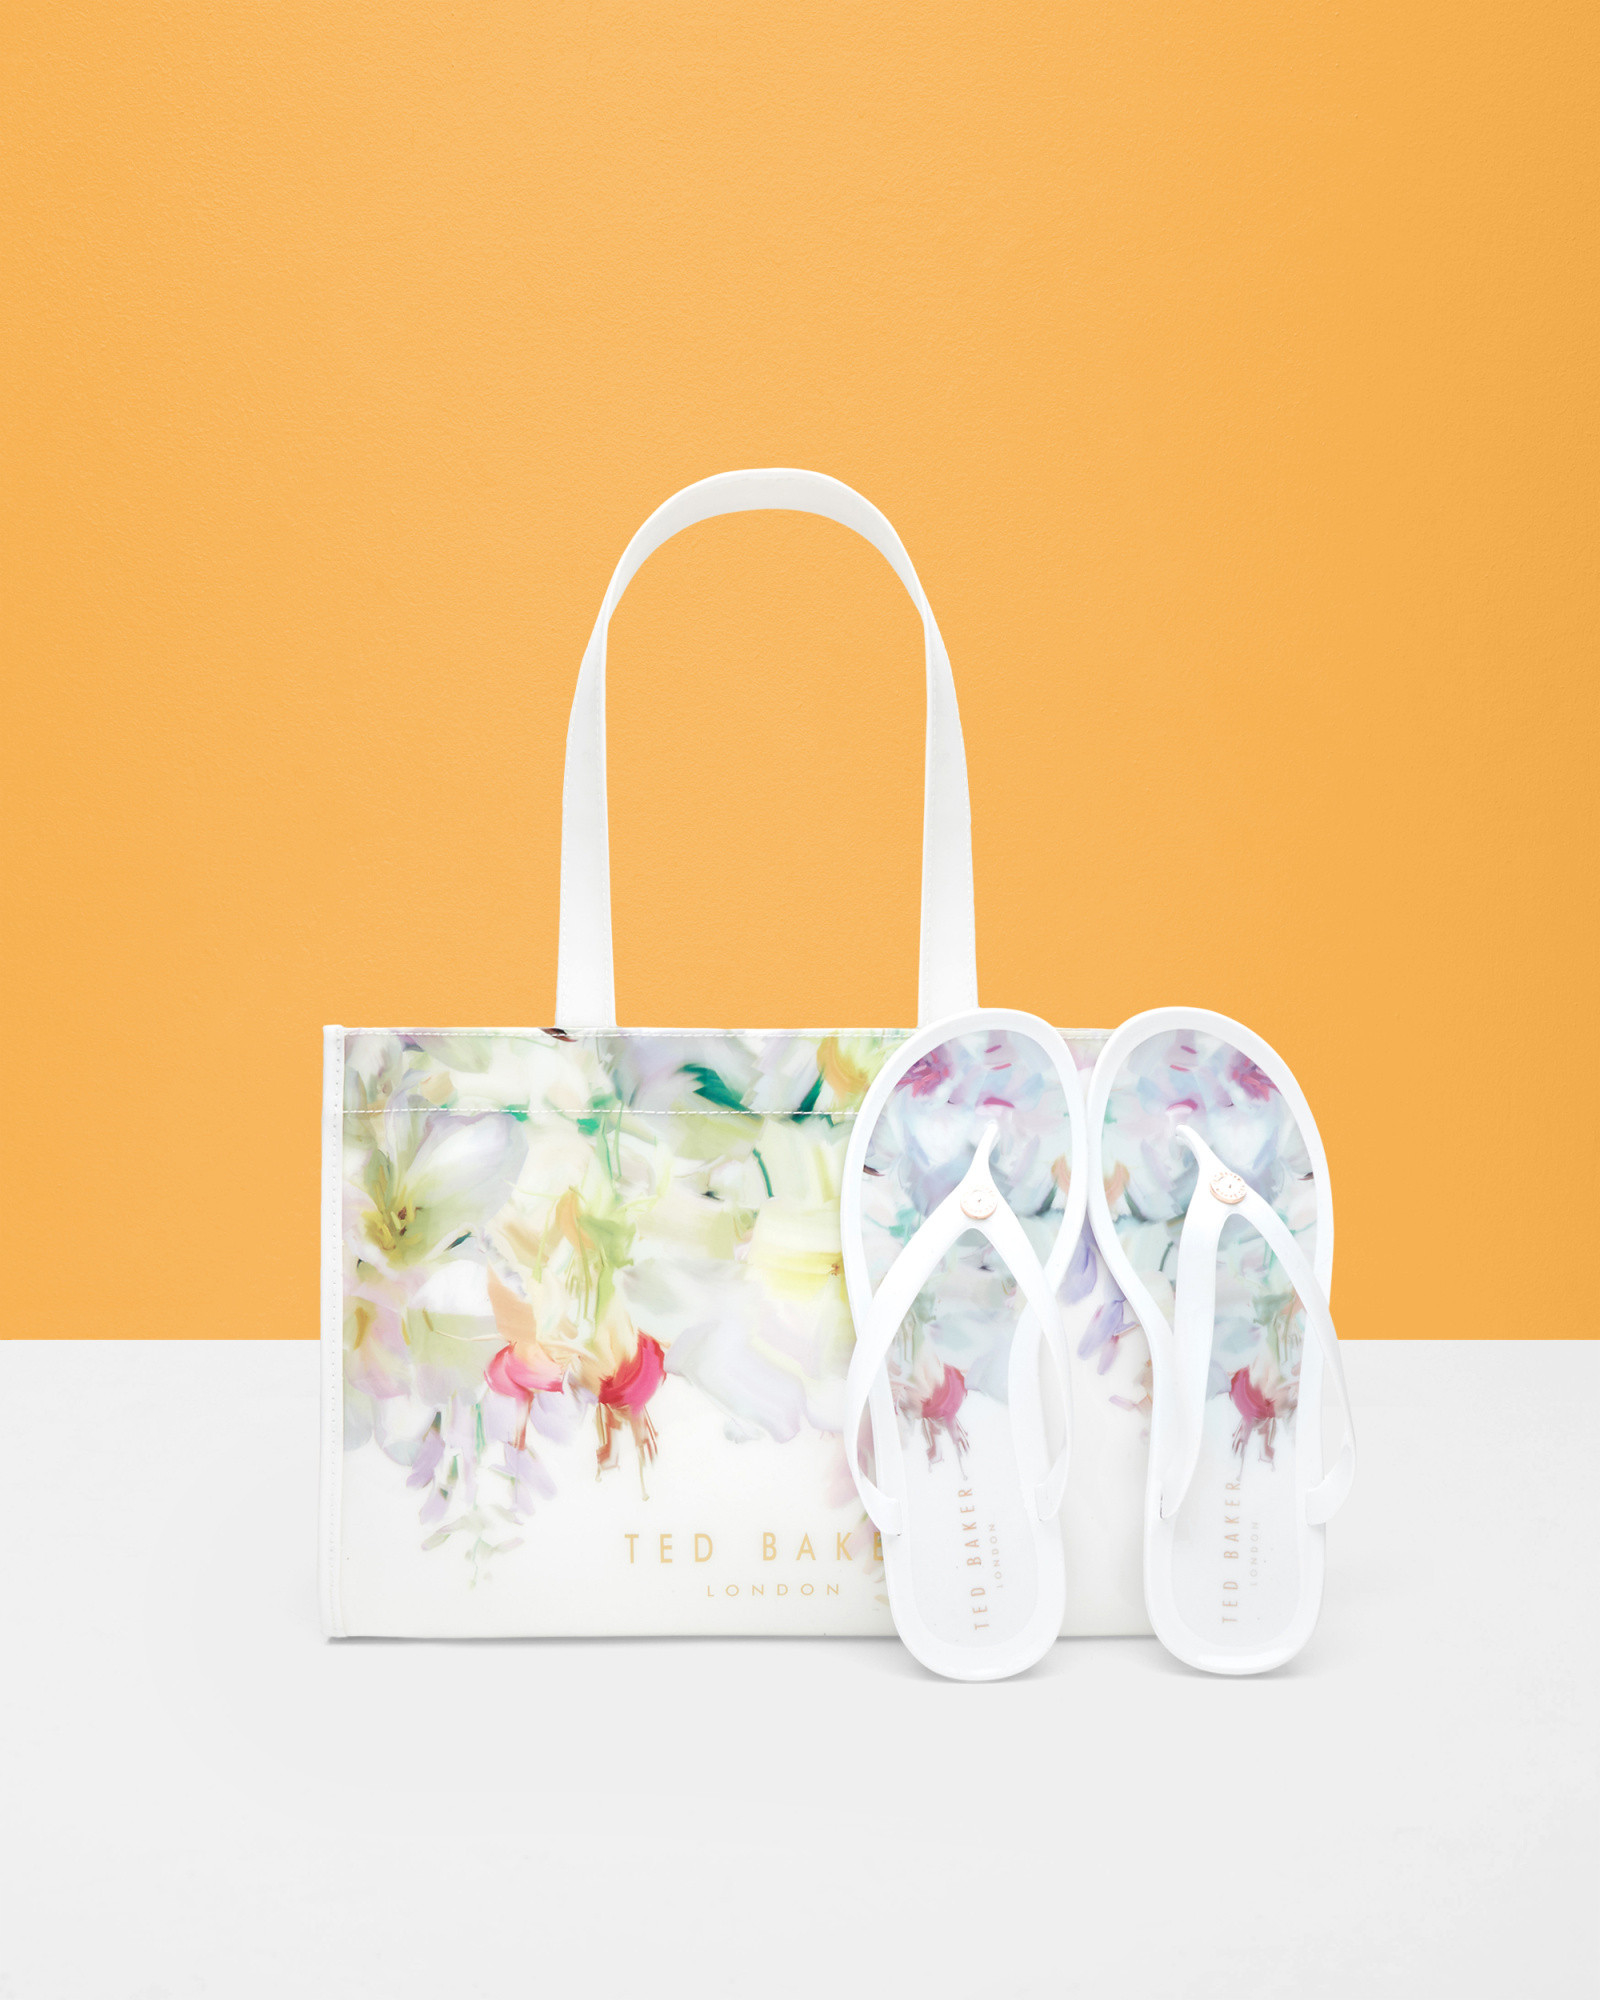 fb3e12326f140f Ted Baker Hanging Gardens Flip Flop And Bag Set in White - Lyst